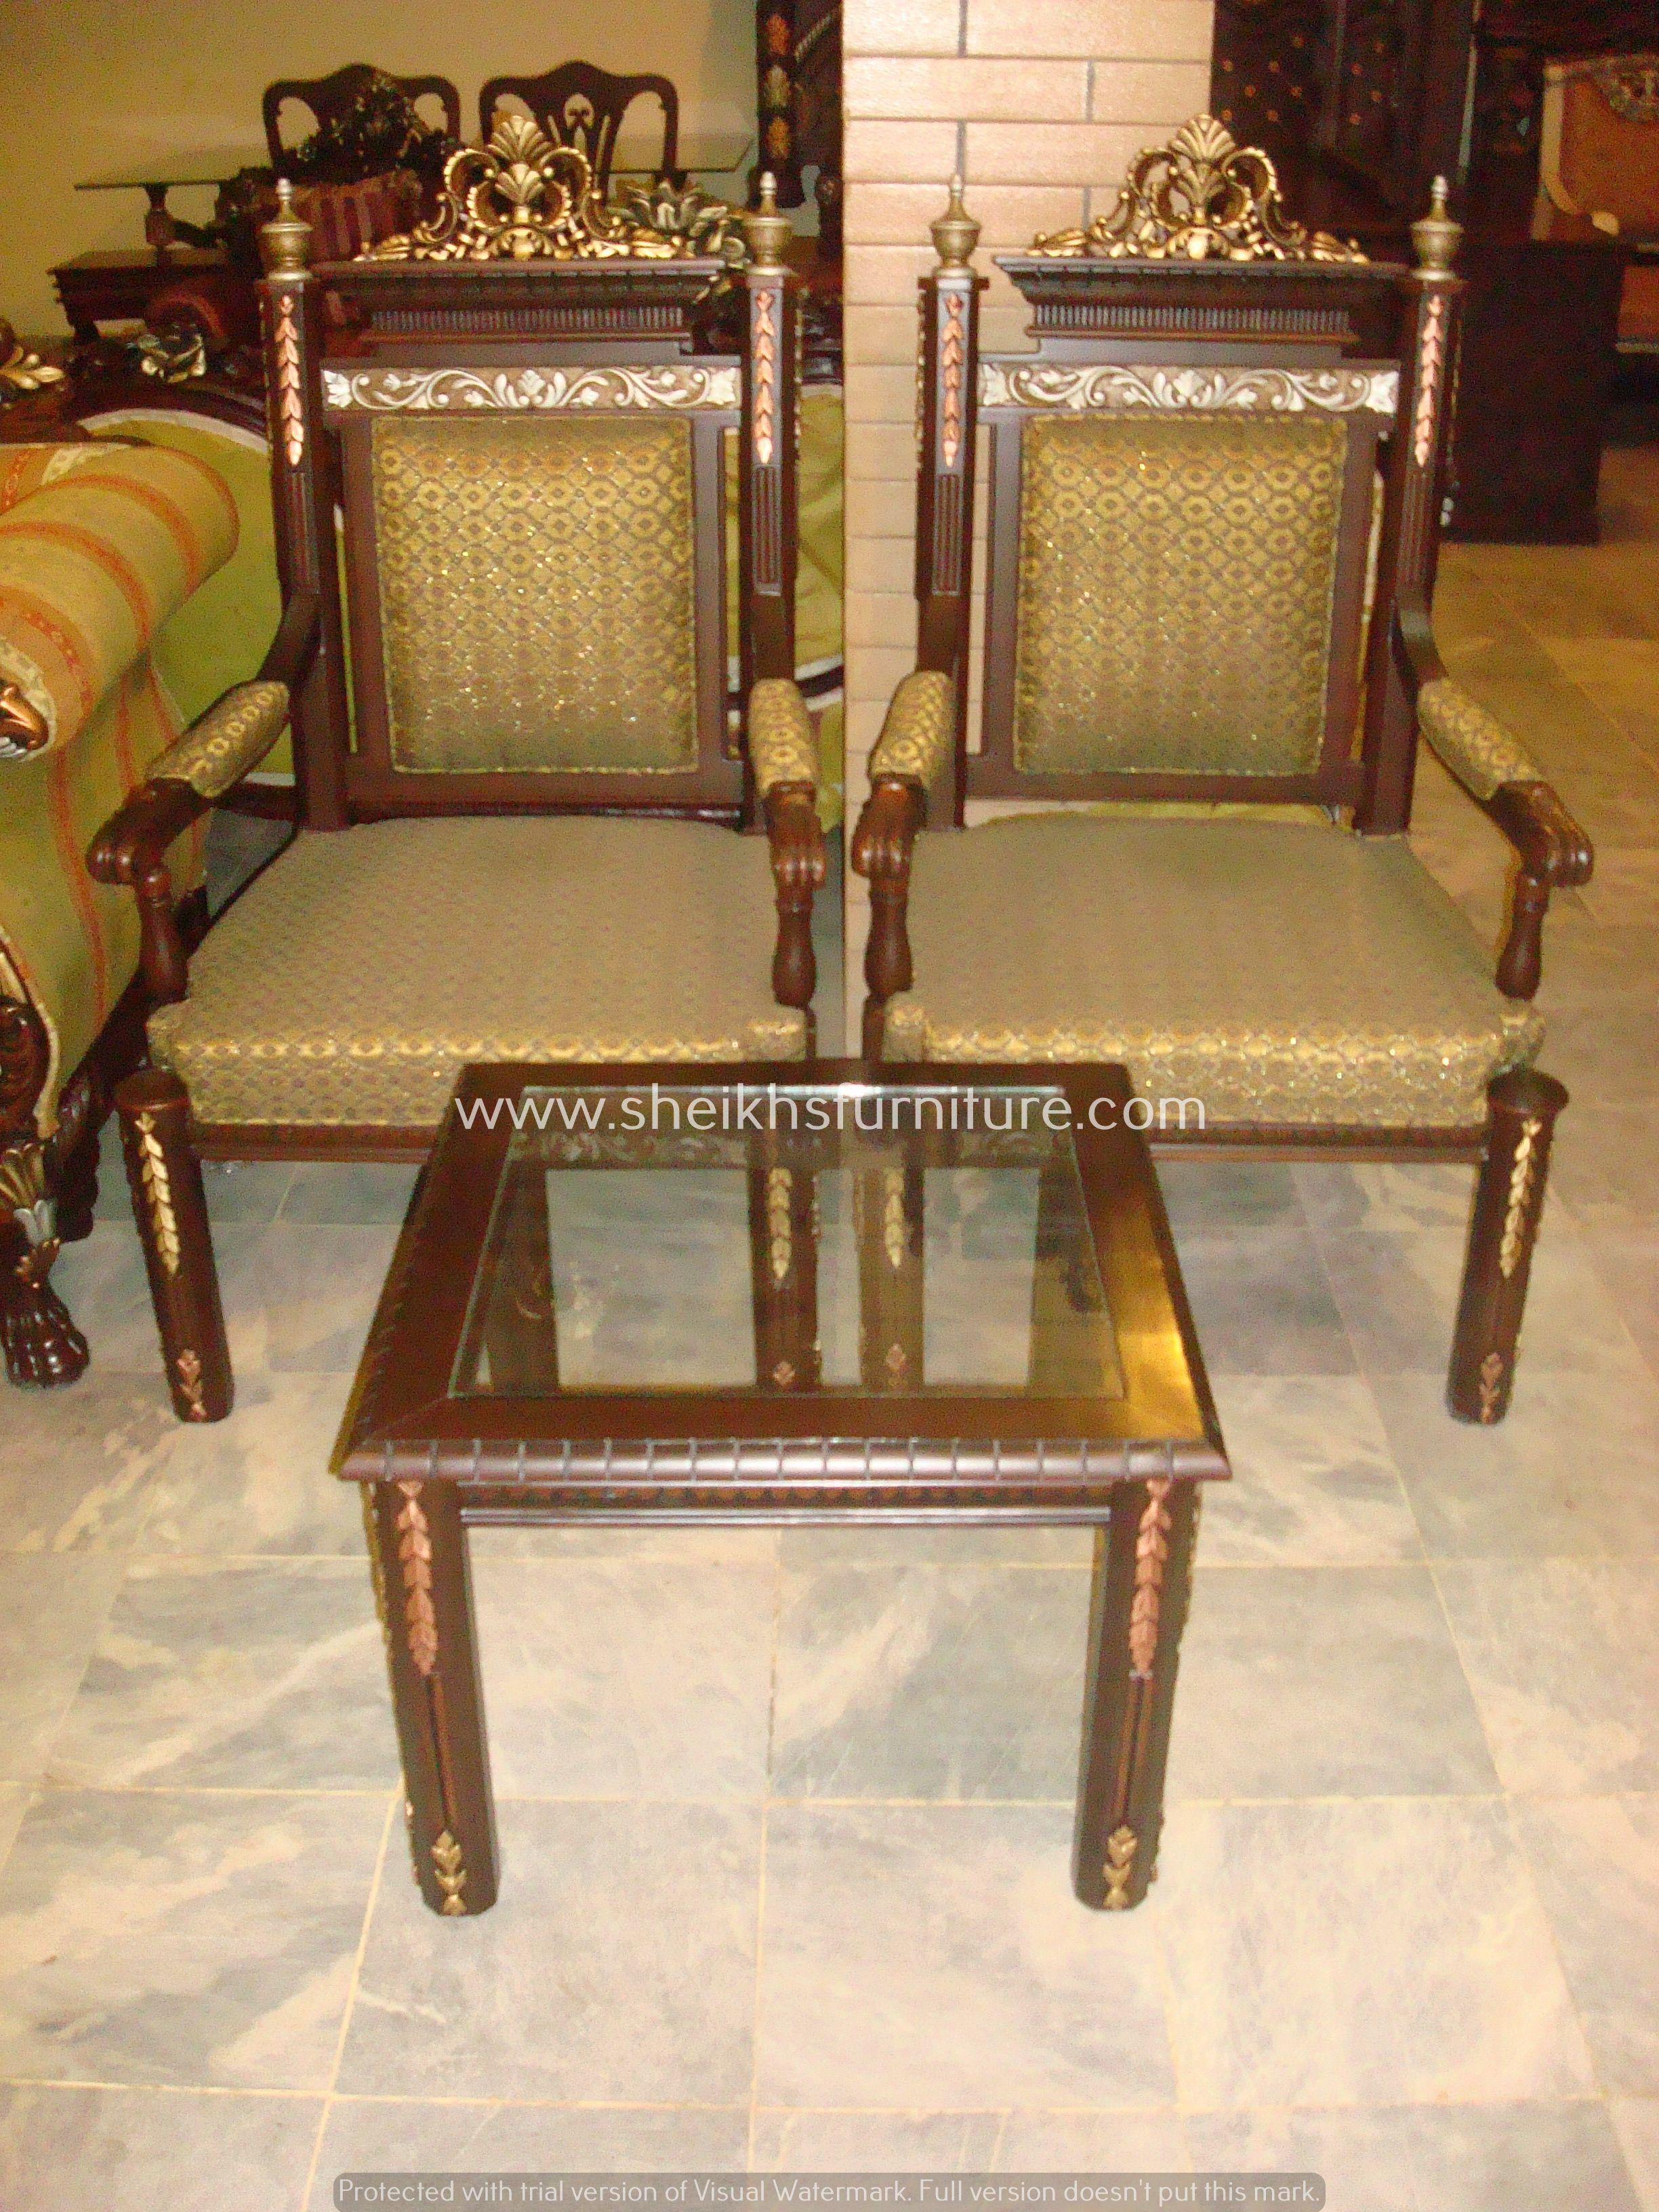 bedroom chair table set folding umbrella chairs this is our solid rosewood classic made in